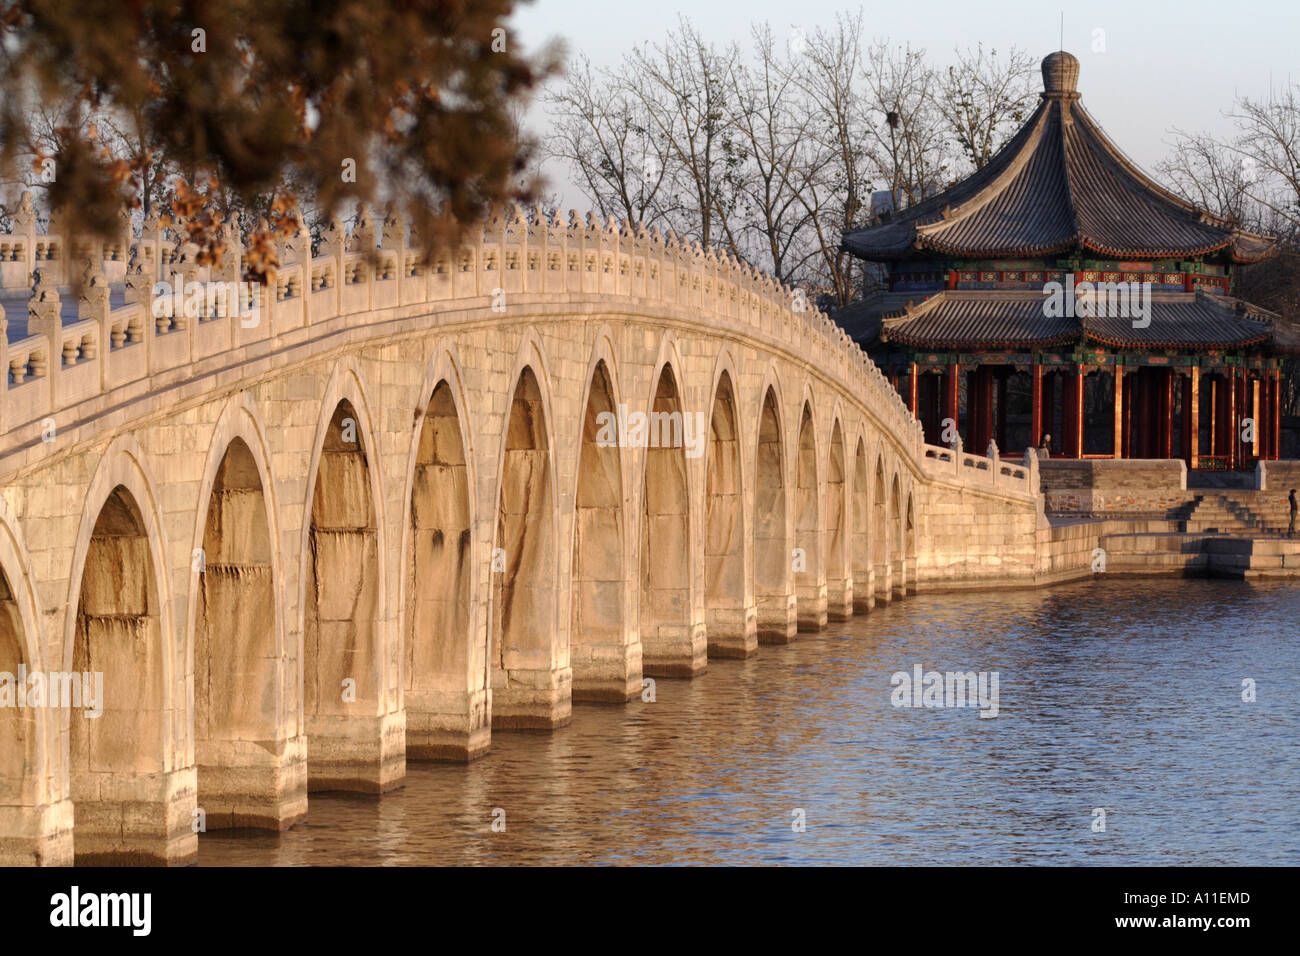 Seventeen Arch Bridge at the Summer Palace in Beijing, China - Stock Image